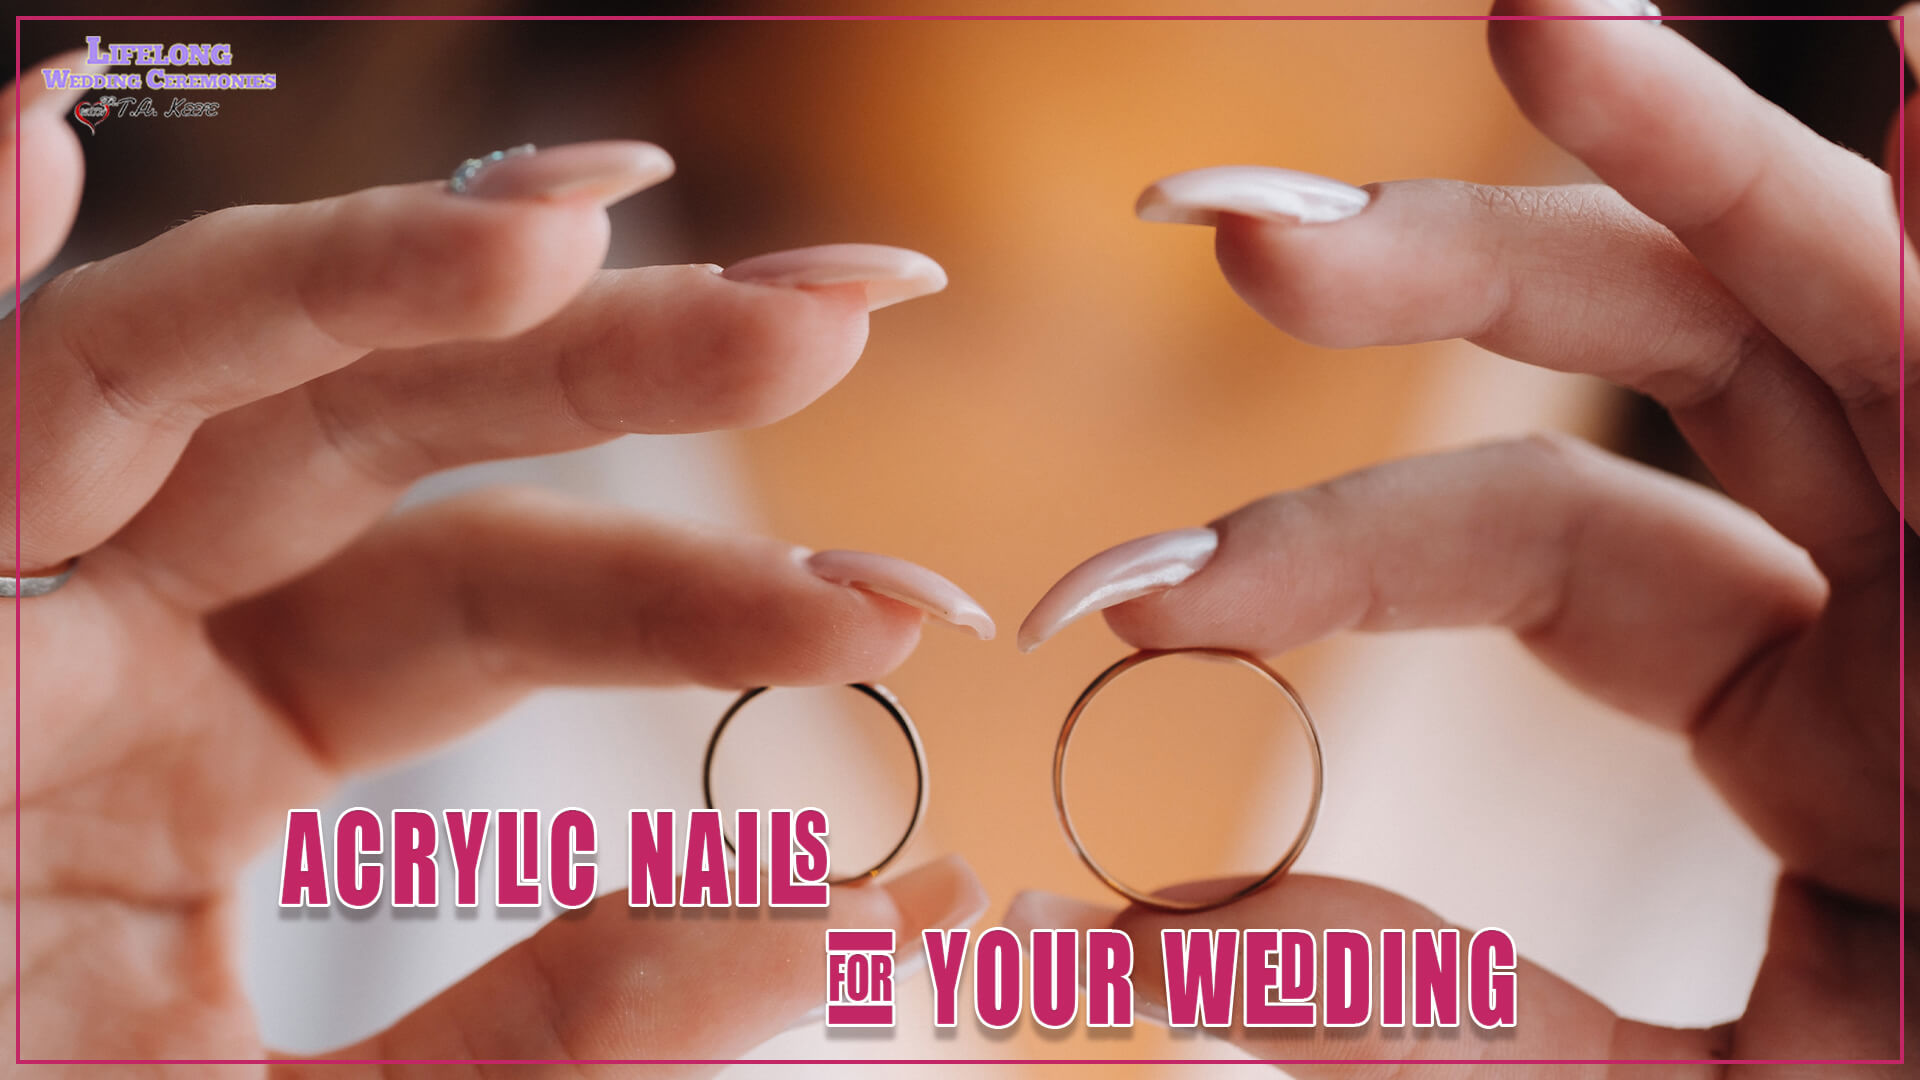 Acrylic Nails for Your Wedding